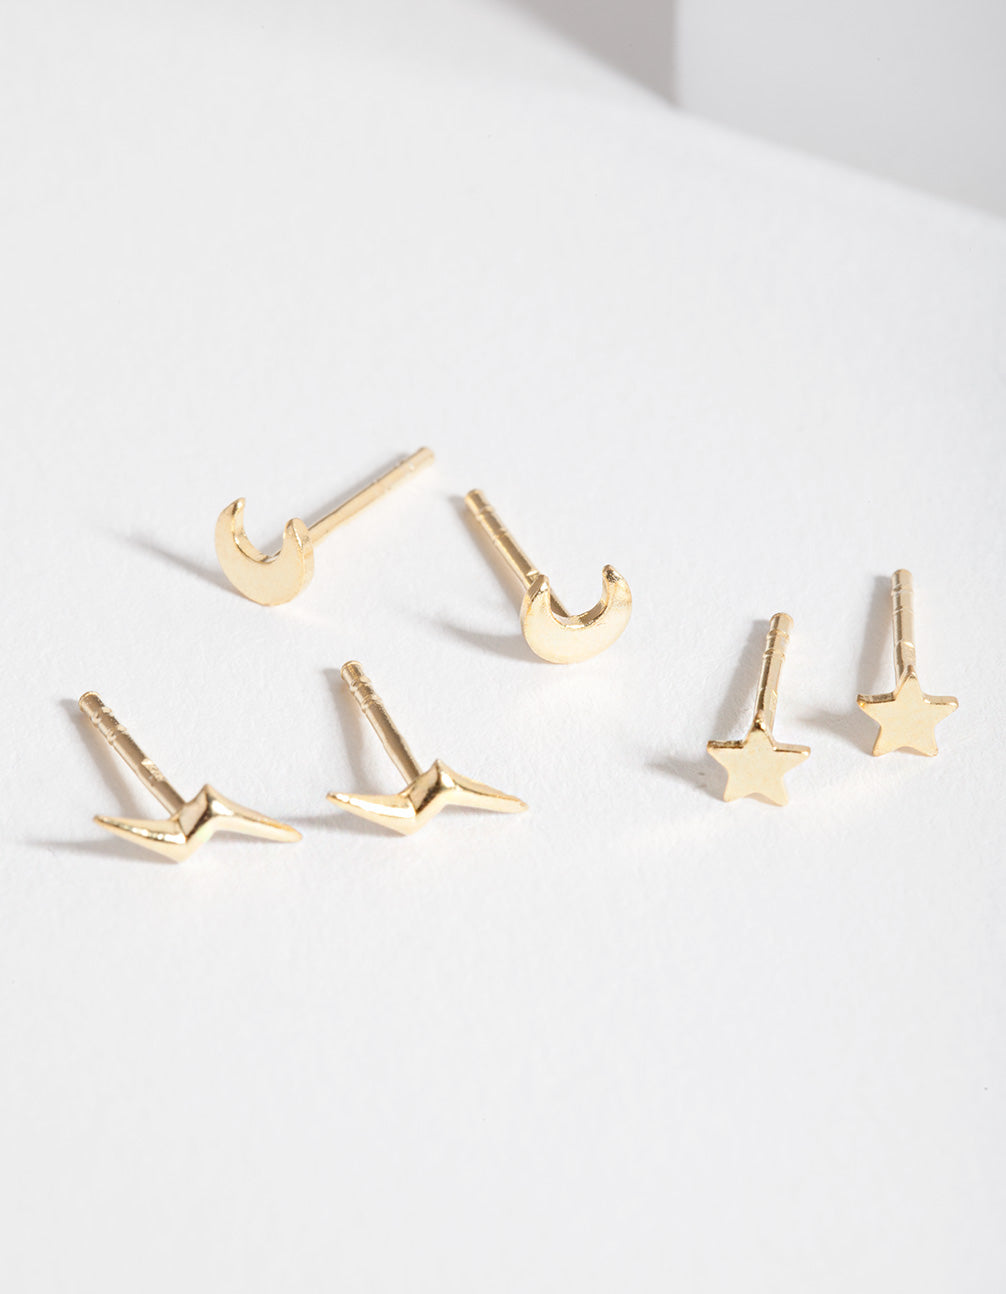 Gold Plated Sterling Silver Celestial Stud Earring Trio